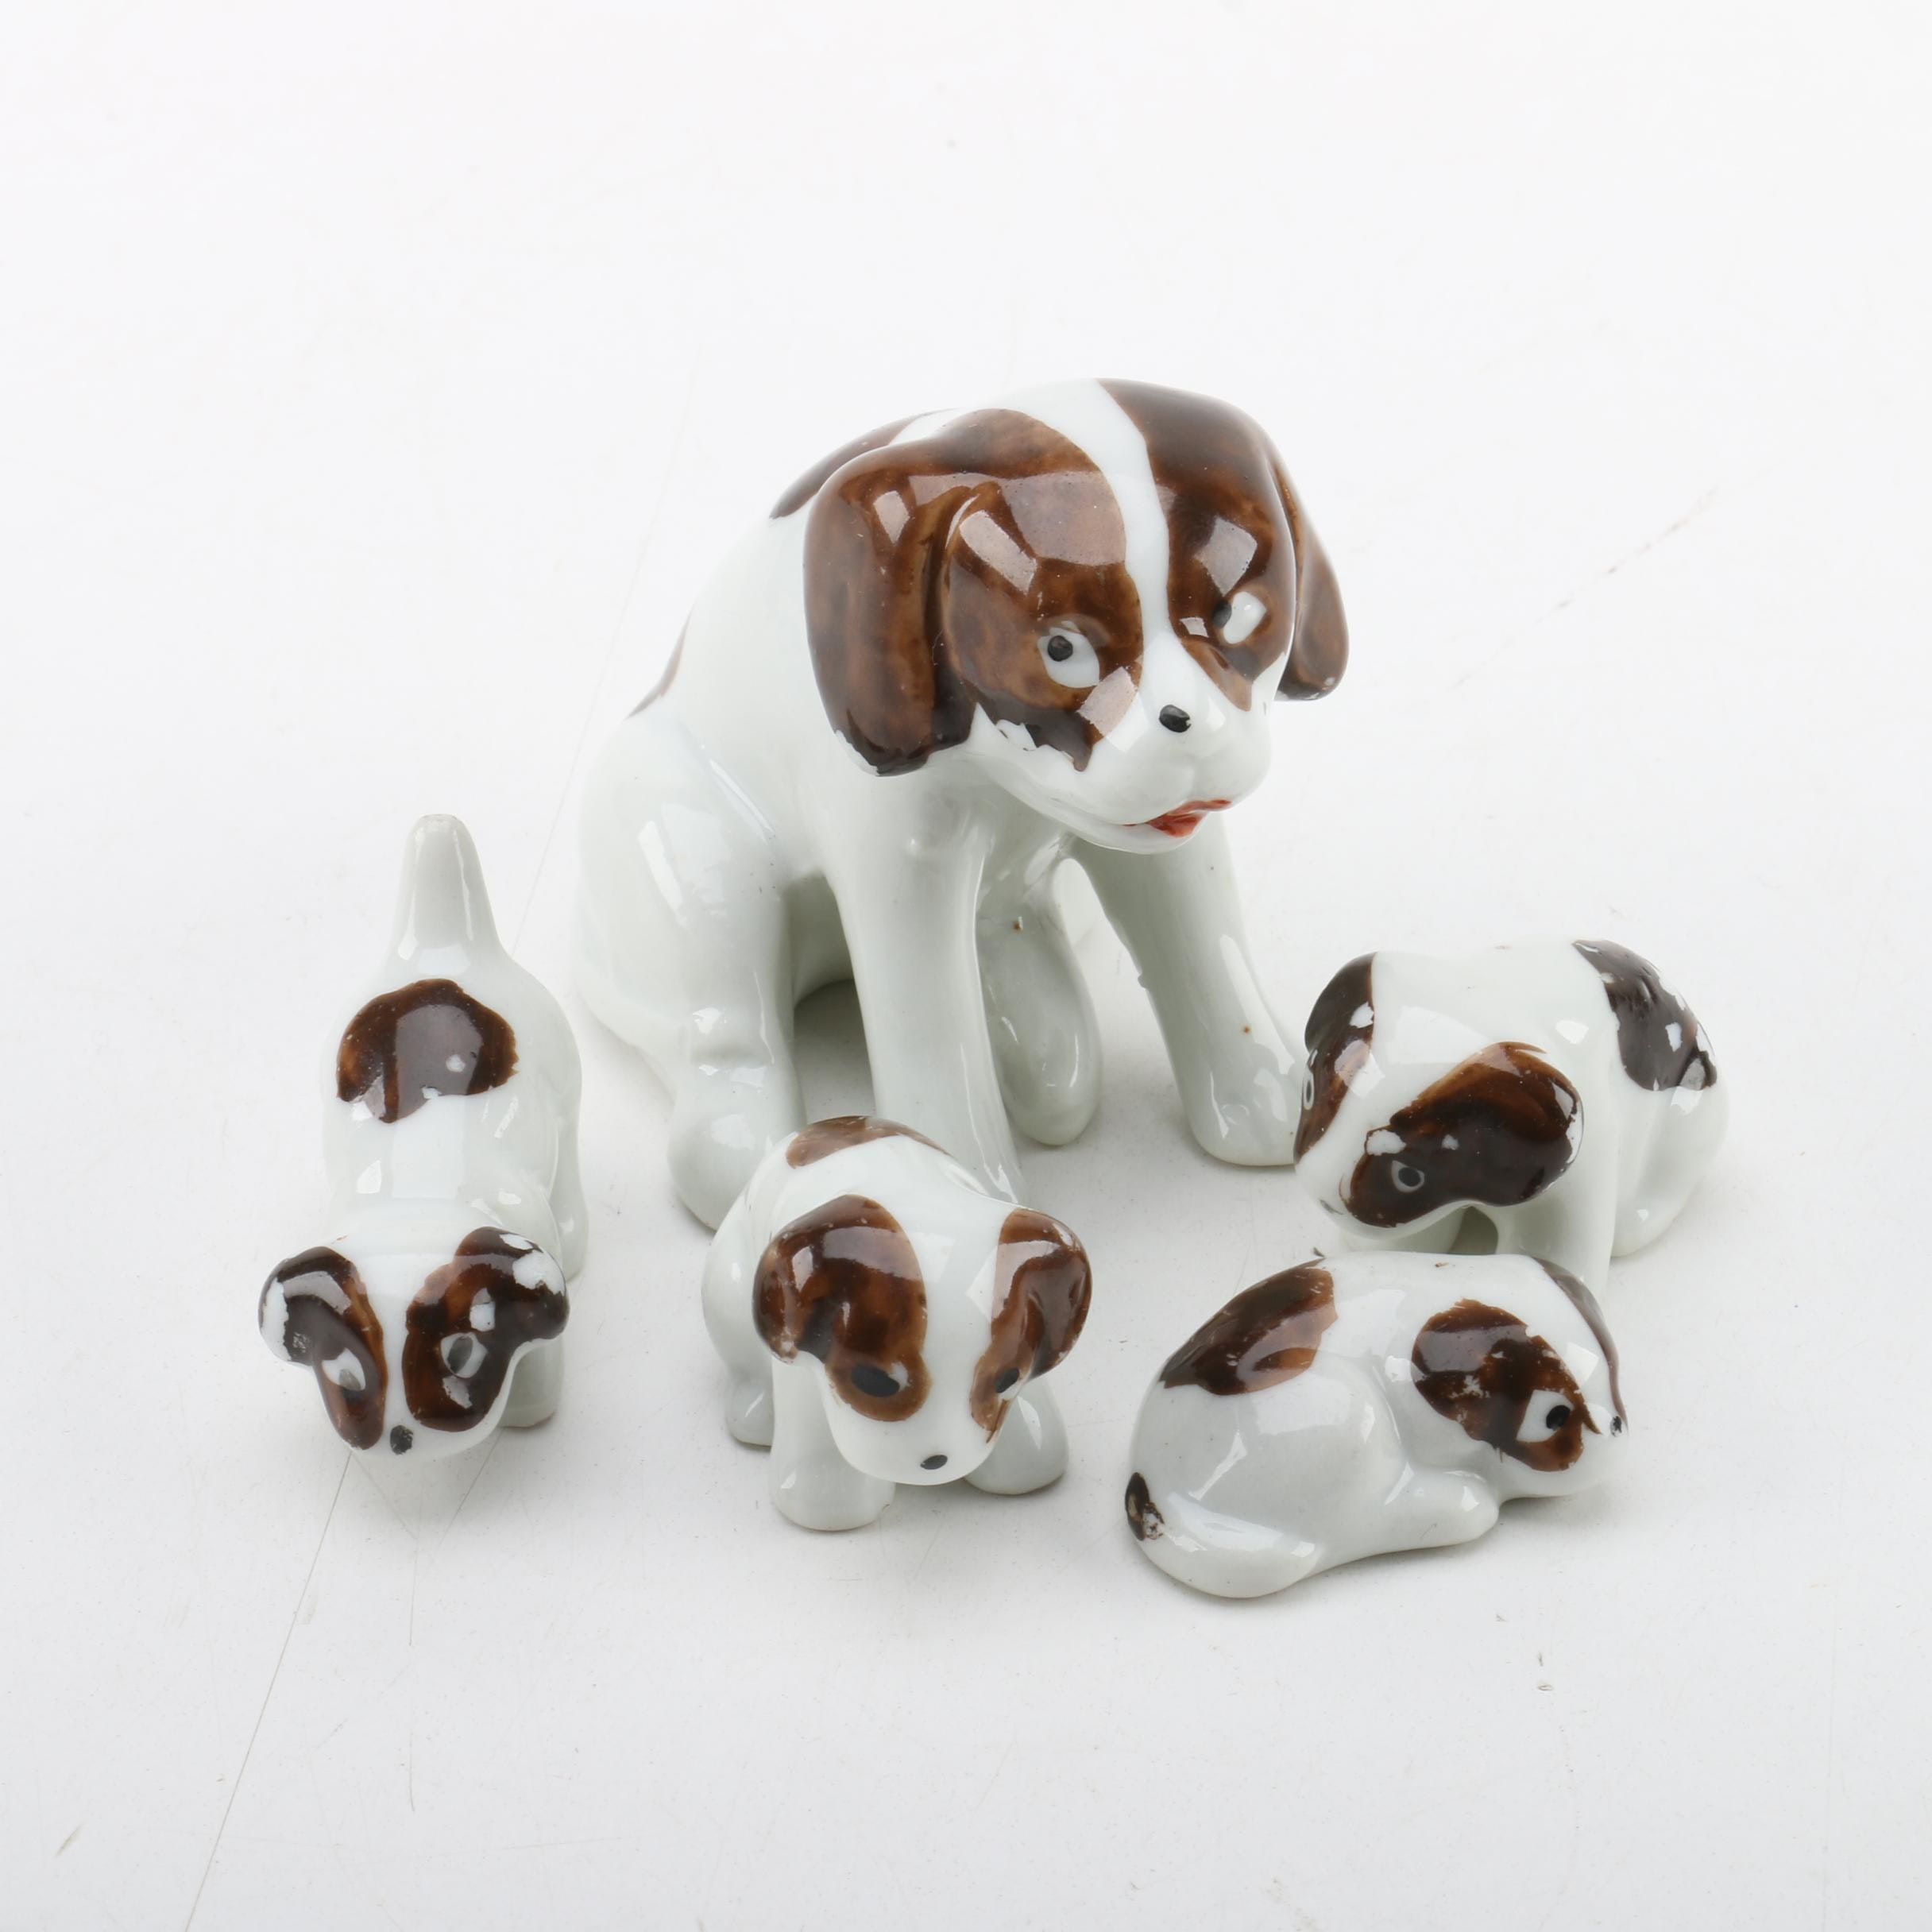 Ceramic Dog and Puppy Figurines from Japan